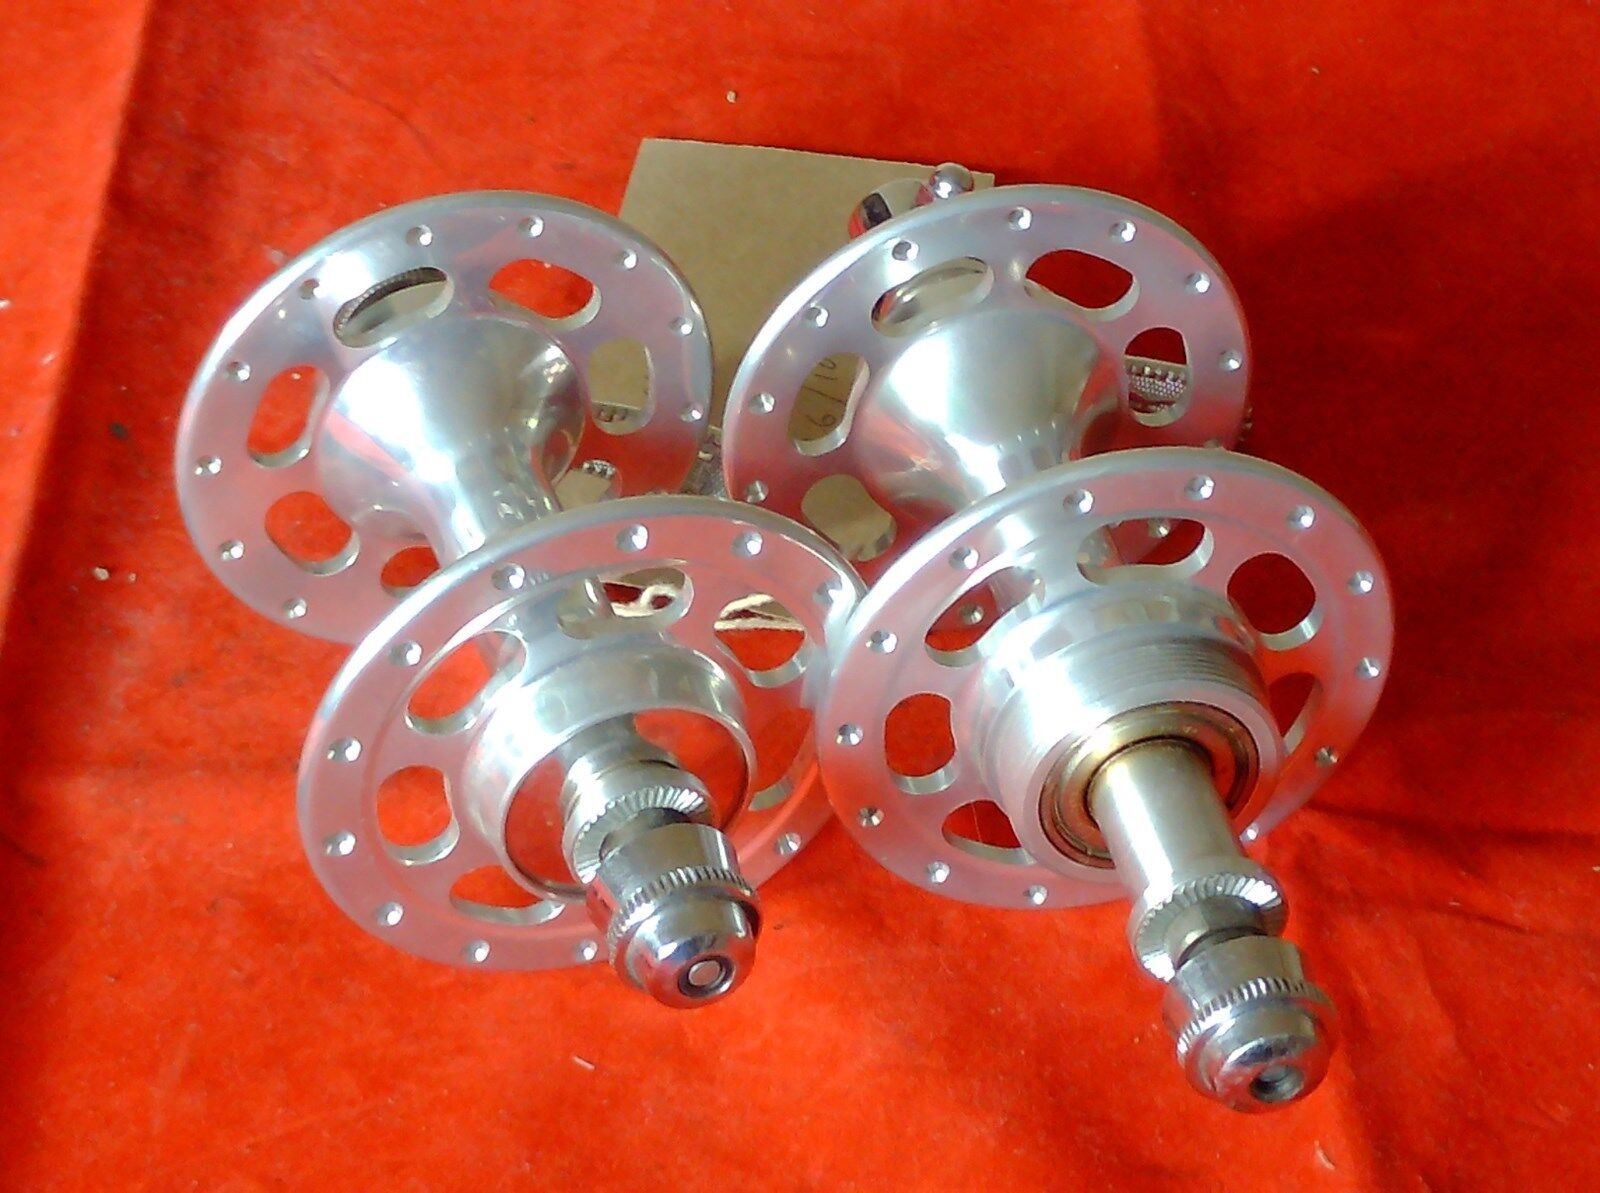 NOS ROYCE 28 HOLE HIGH FLANGE HUBS, 1980's